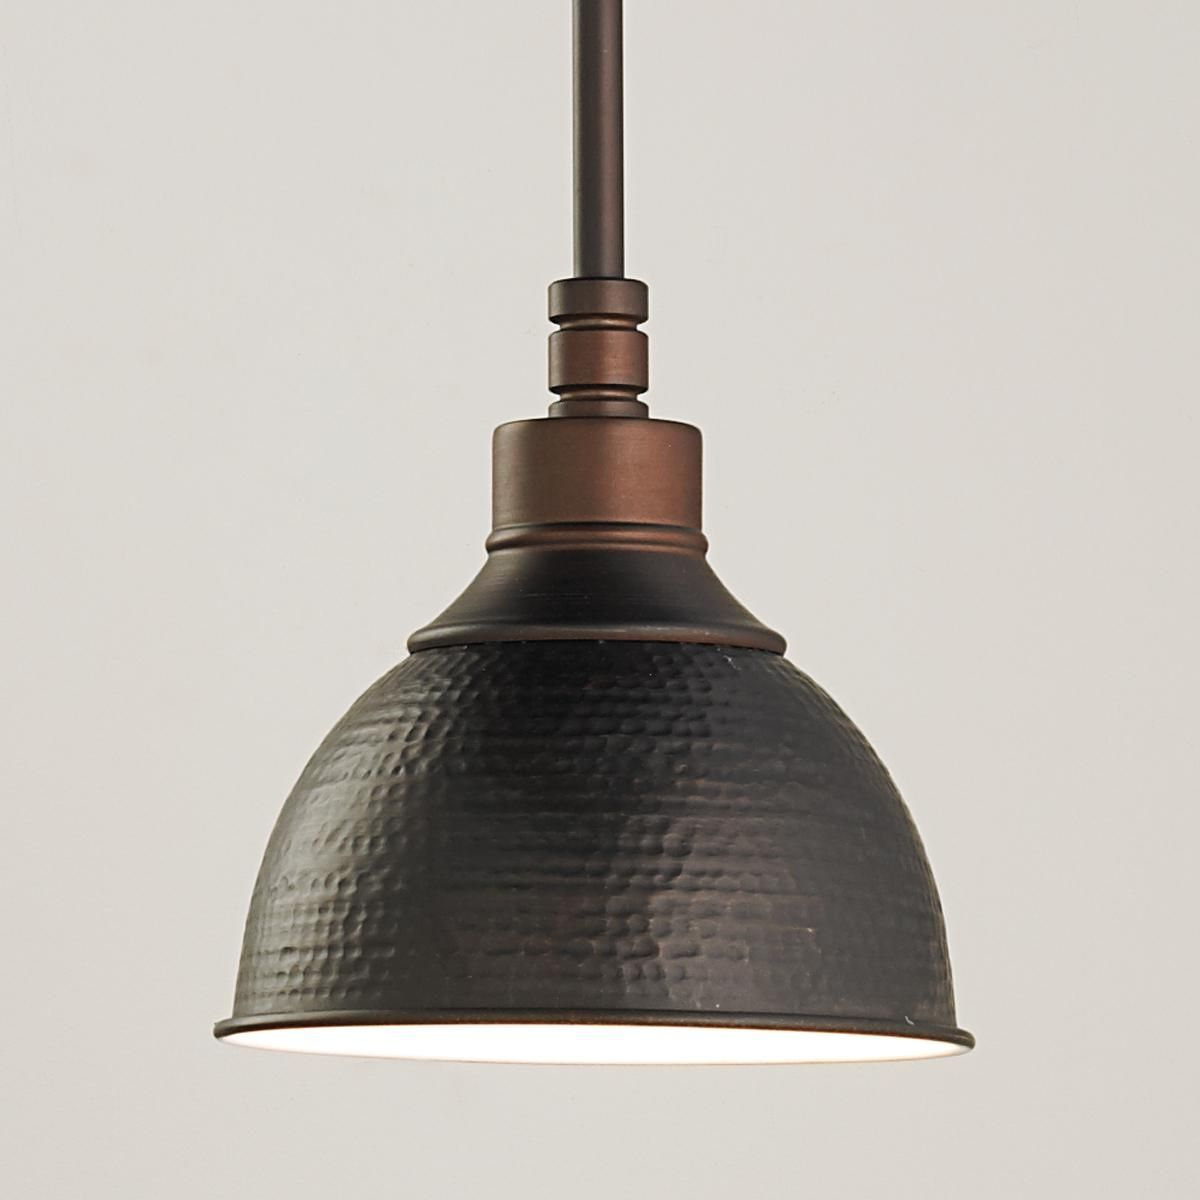 Hammered Metal Pendant Light Small Metal Pendant Light Small